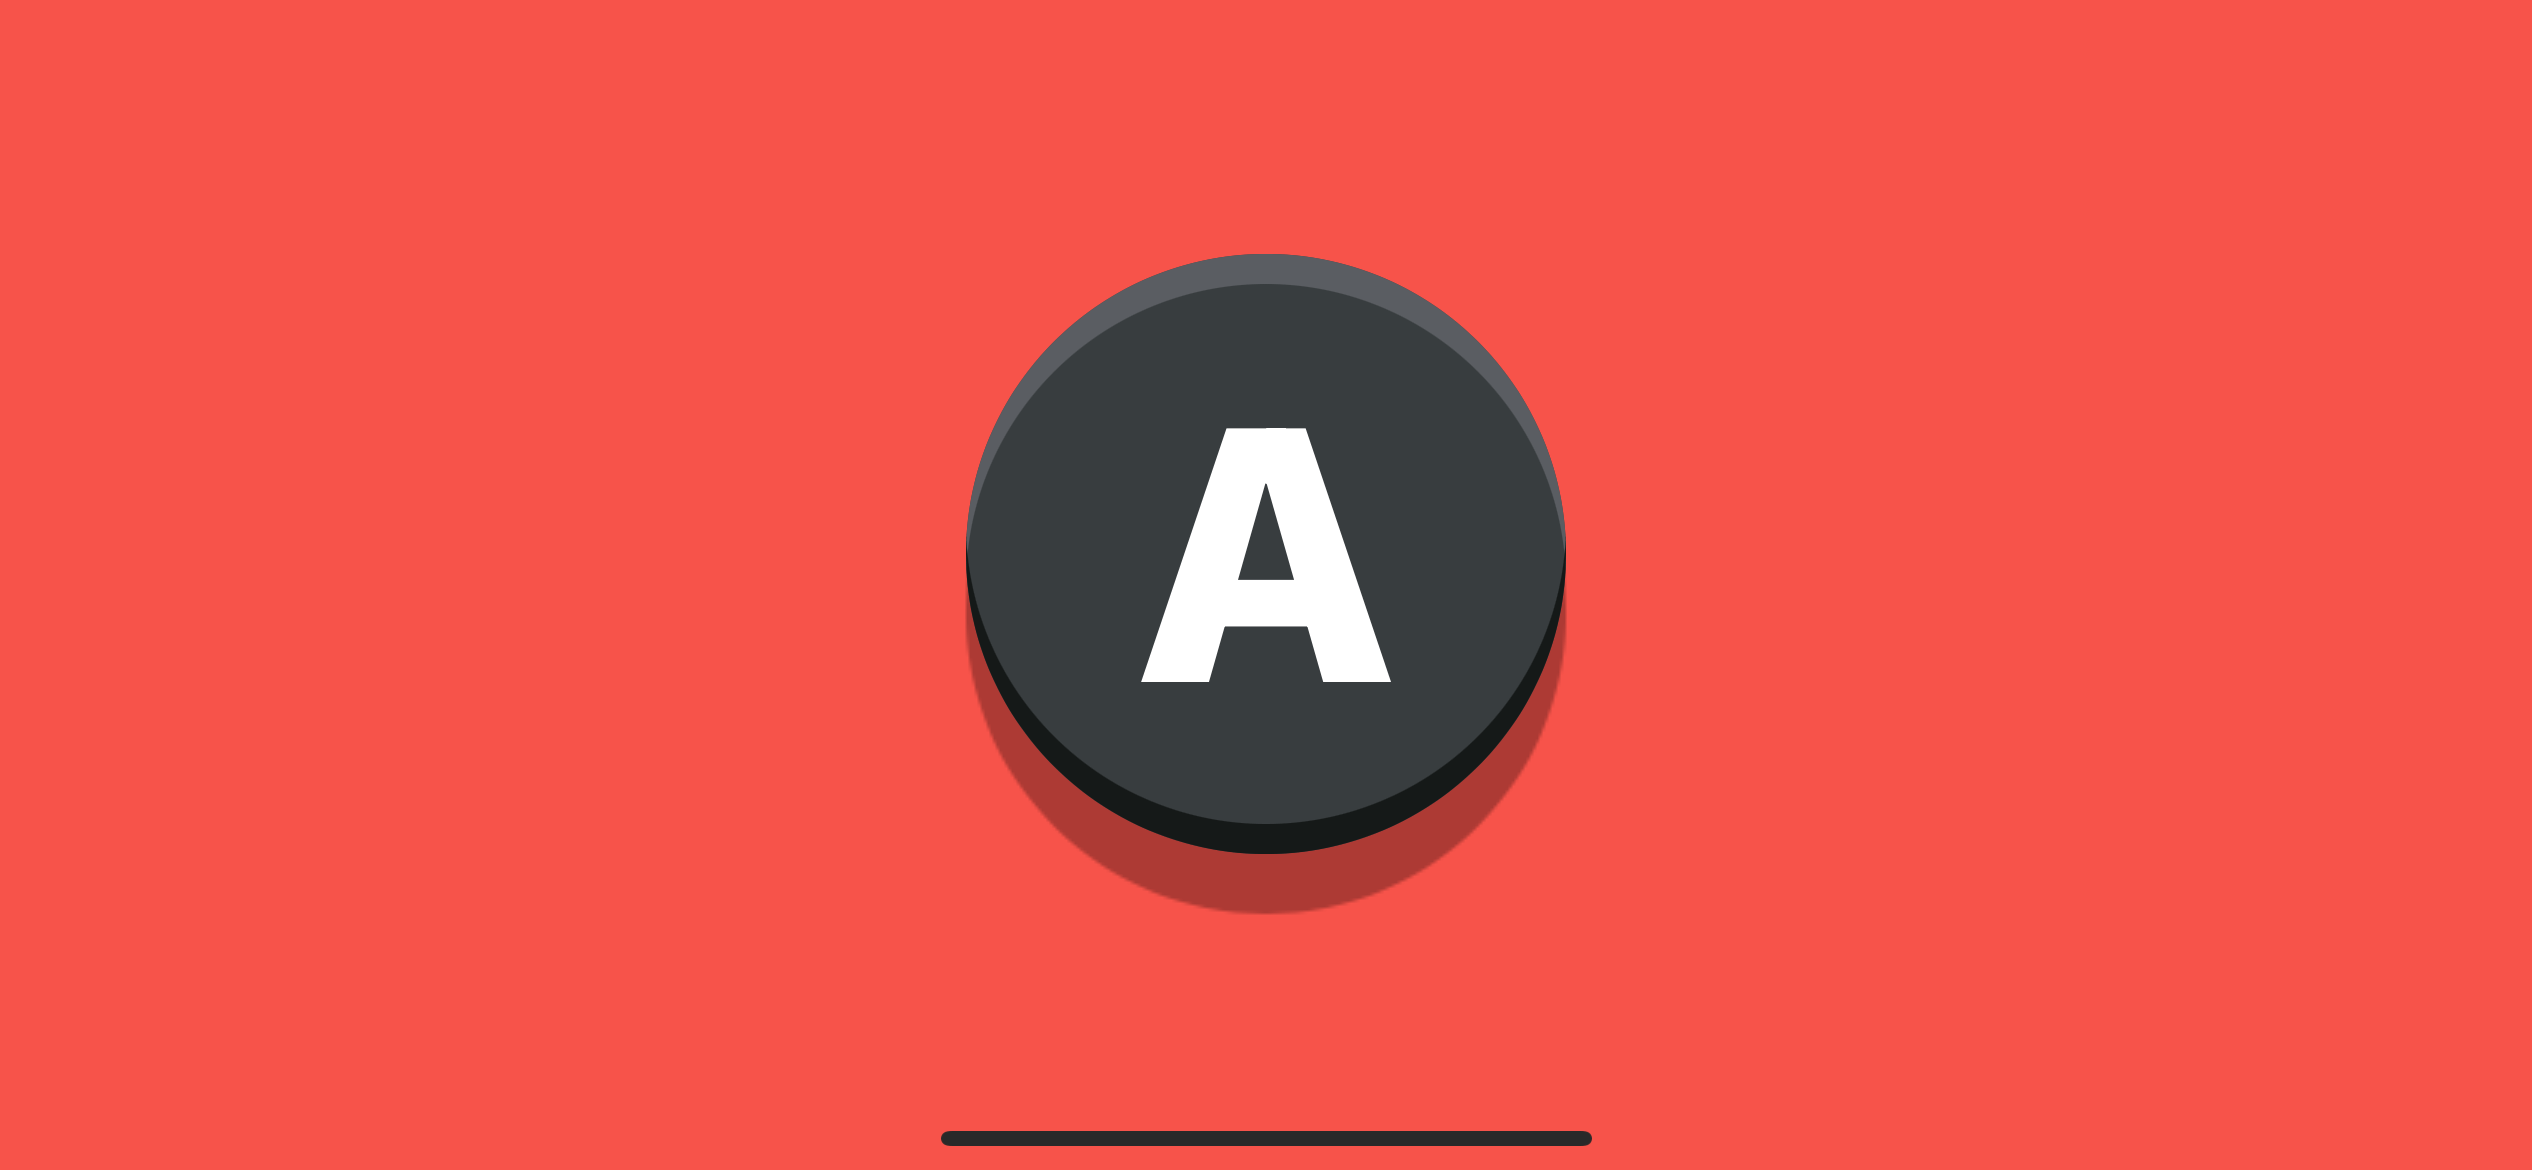 A game controller's button created using a bevel effect.